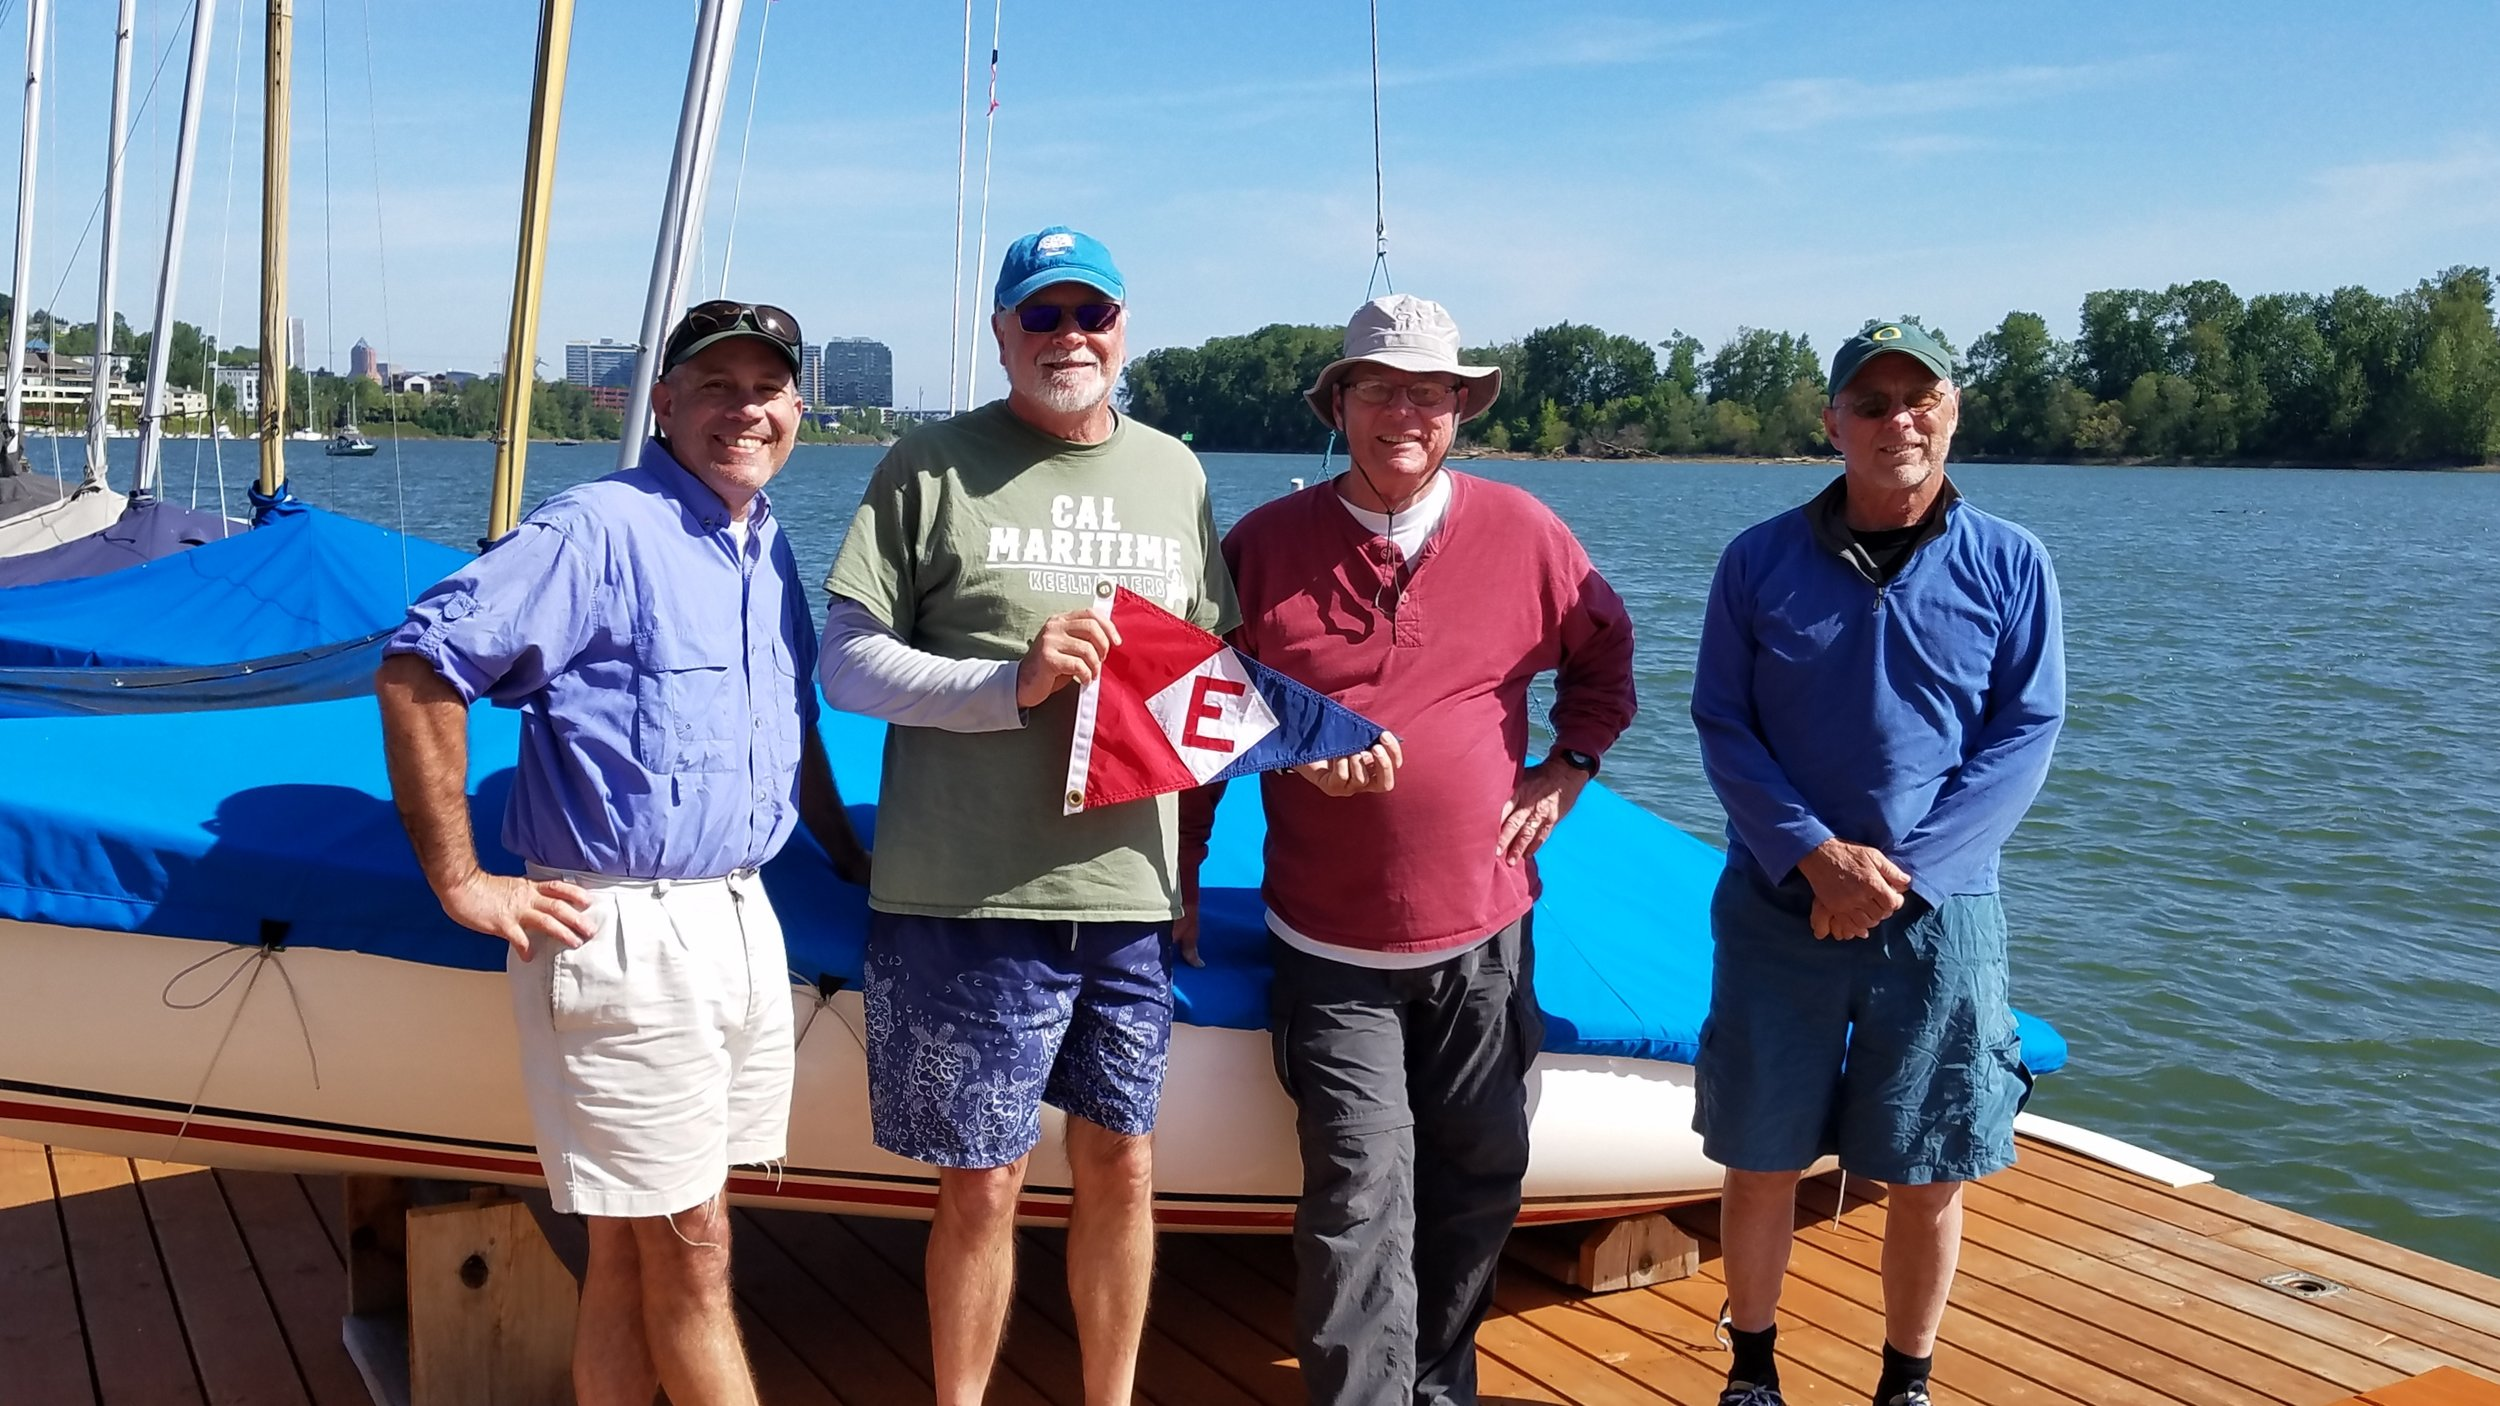 Al Avey, Murray McLeod, Allan Stults and brother Jim brought EYC pride to the Turtle Regatta at Willamette Sailing Club in Portland, OR